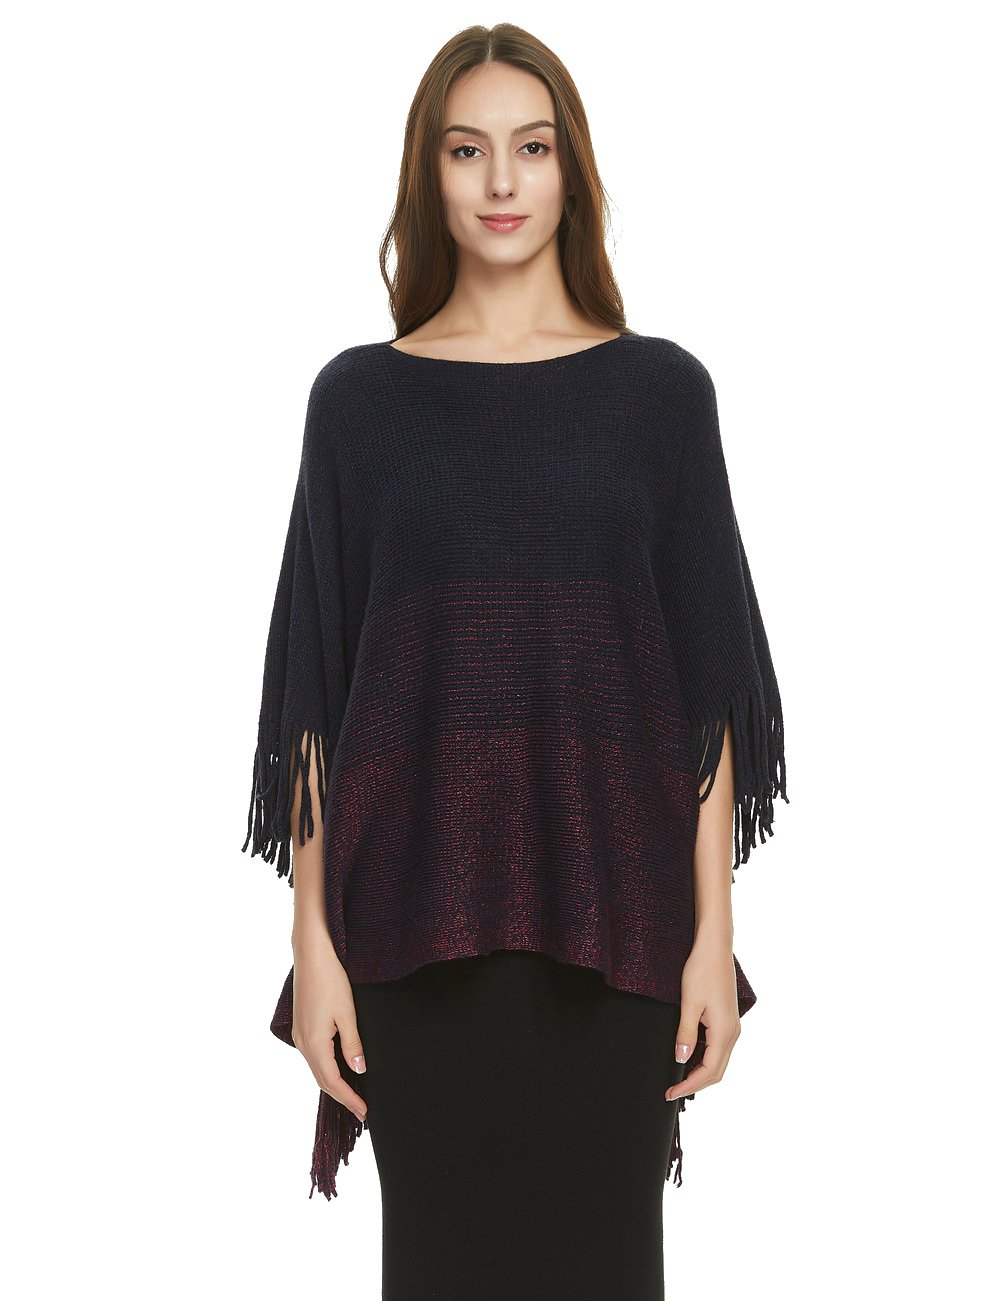 Ferand Women's Constrast Striped Poncho Batwing Sleeve Sweater Tops with Fringes, One Size, Navy blue